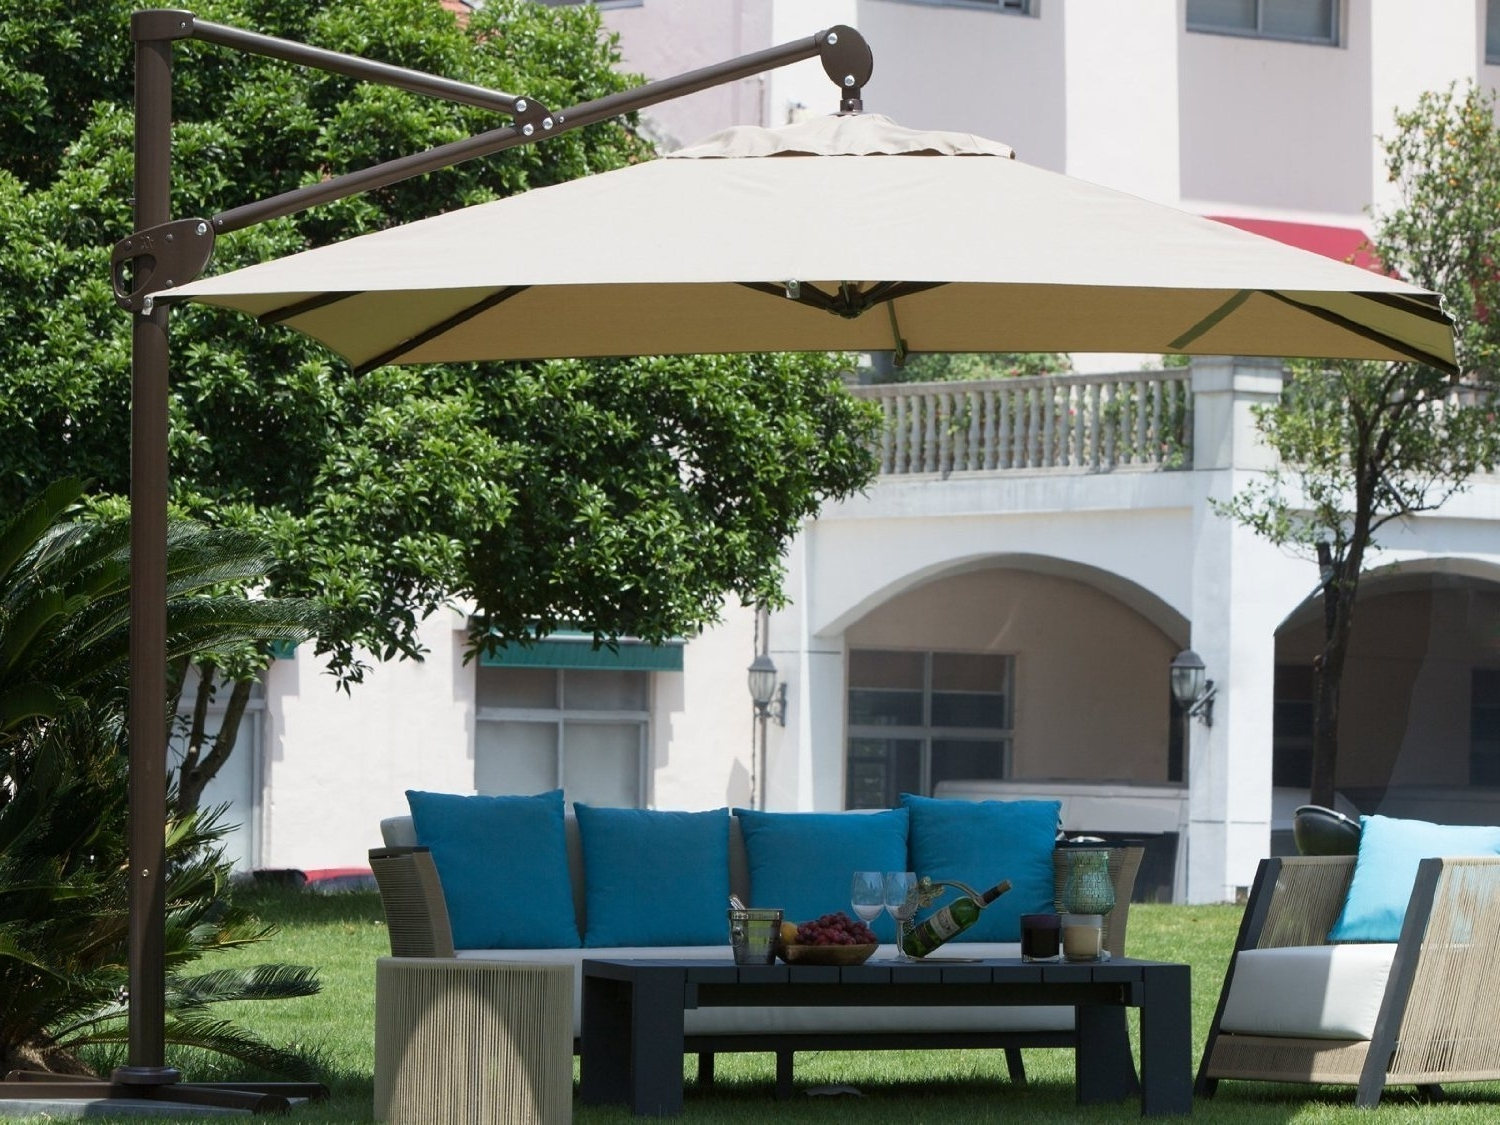 Latest Rectangular Cantilever Umbrella Reviews – Outsidemodern Pertaining To Wayfair Patio Umbrellas (View 14 of 20)